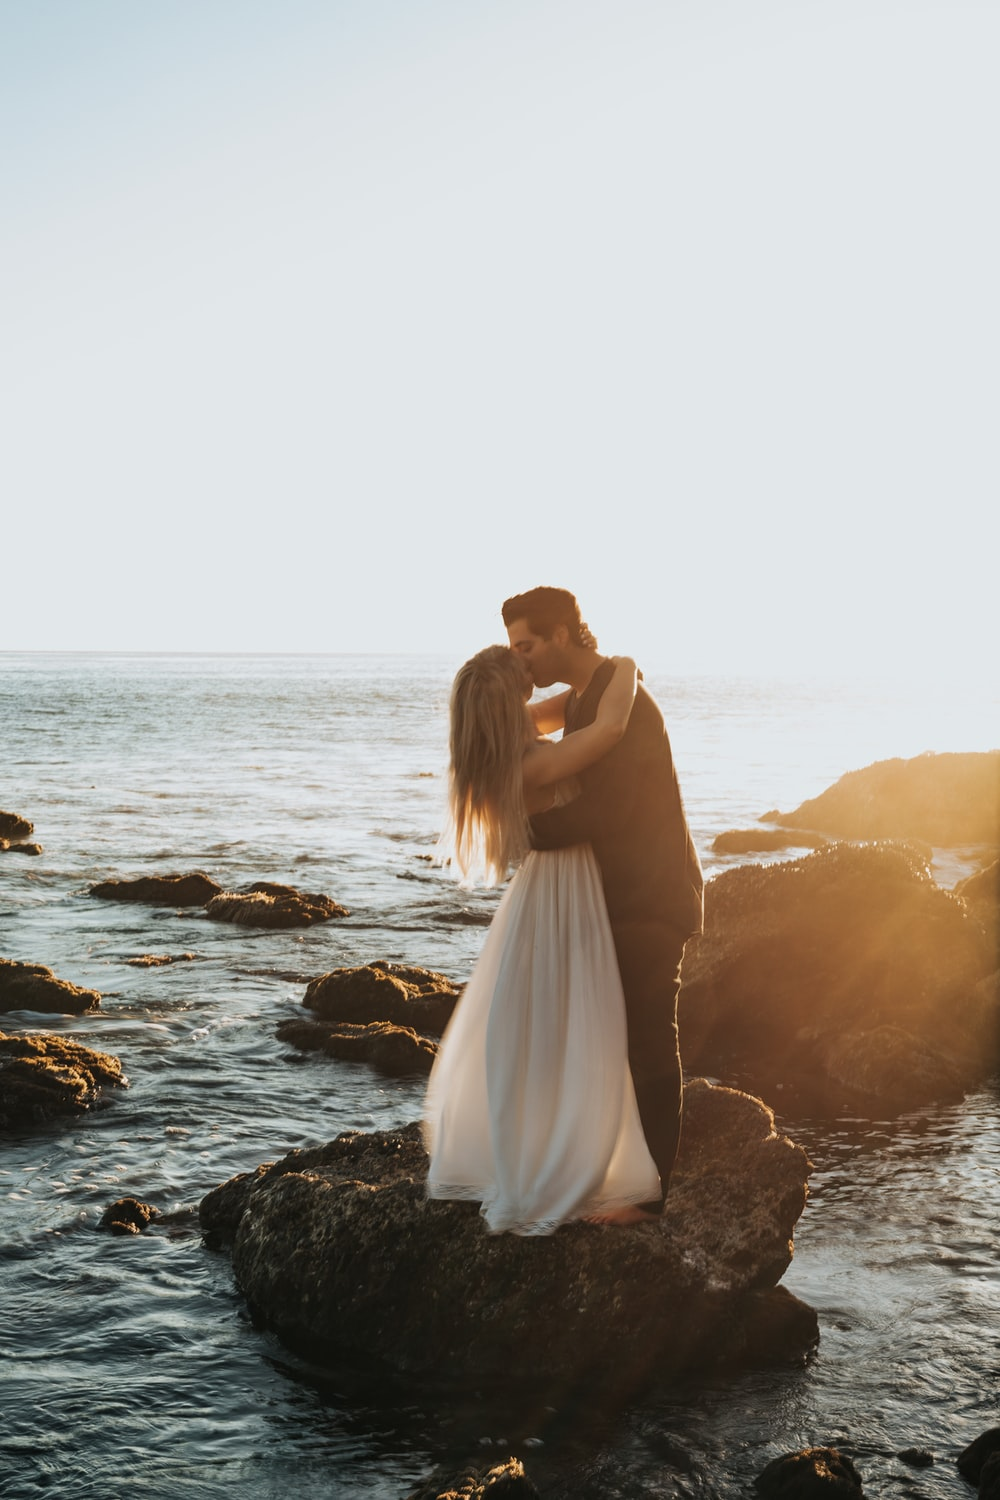 man and woman kissing on top of gray rock at beach